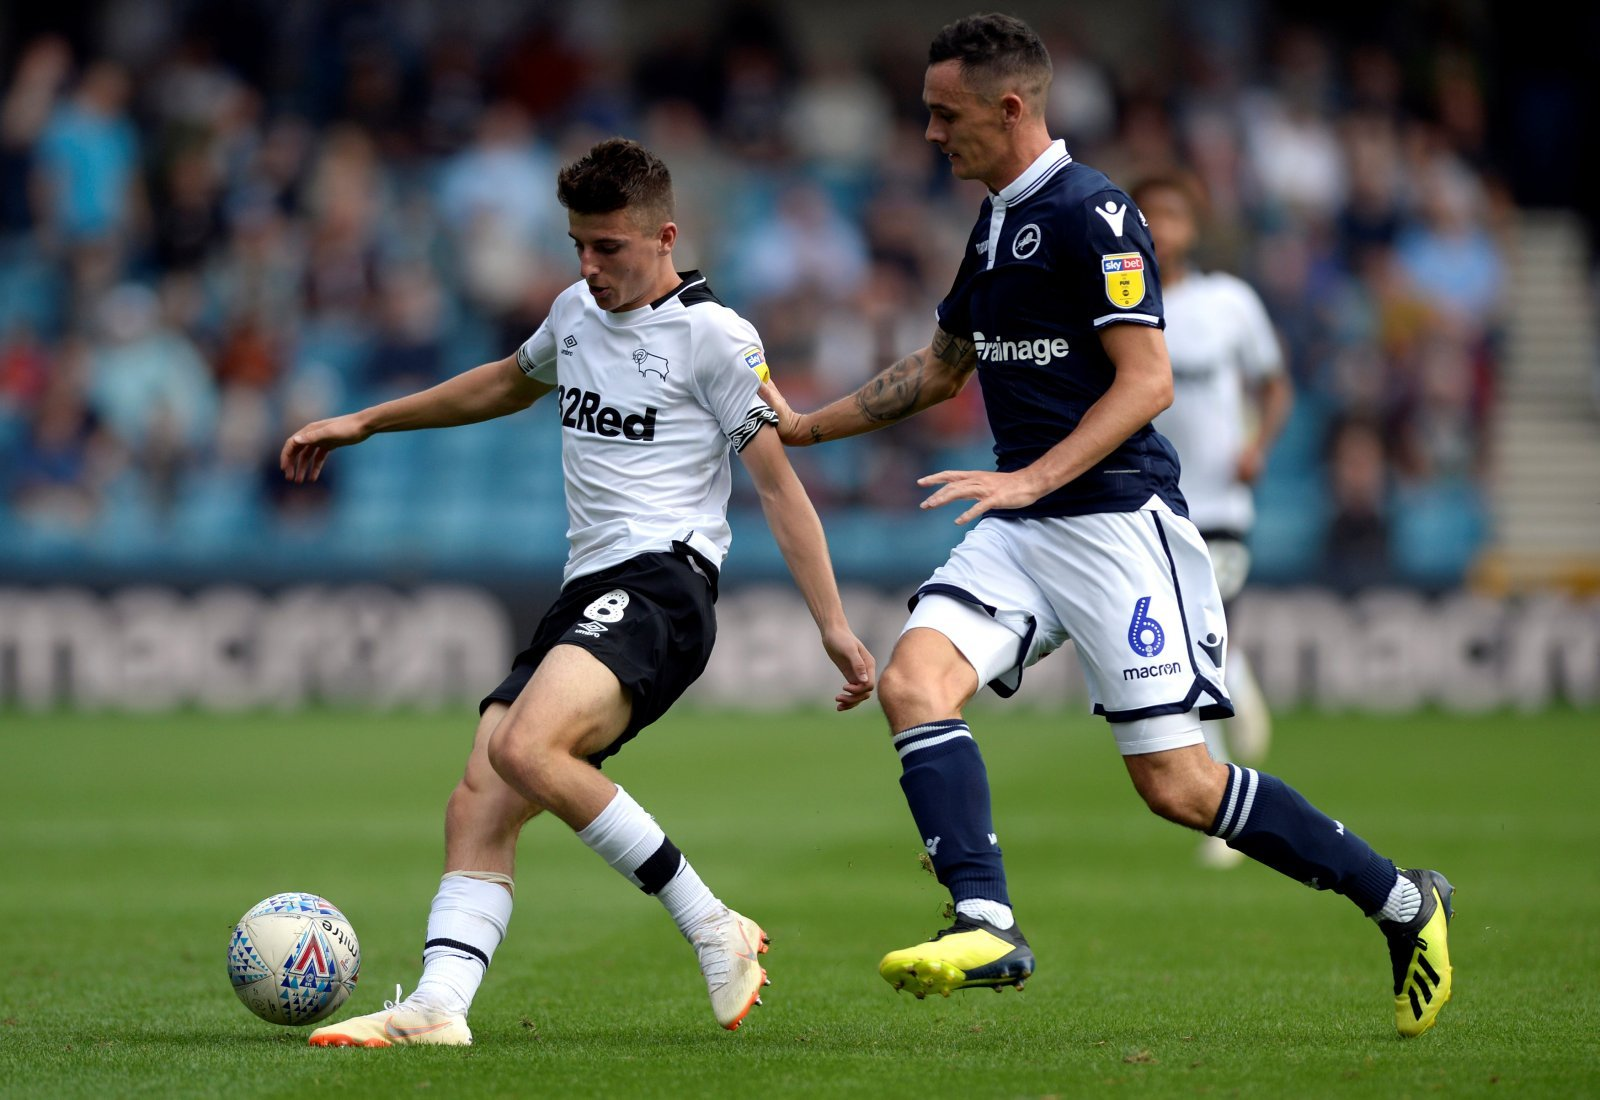 Leeds United were unfortunate to miss out on game-changing signing of Mason Mount